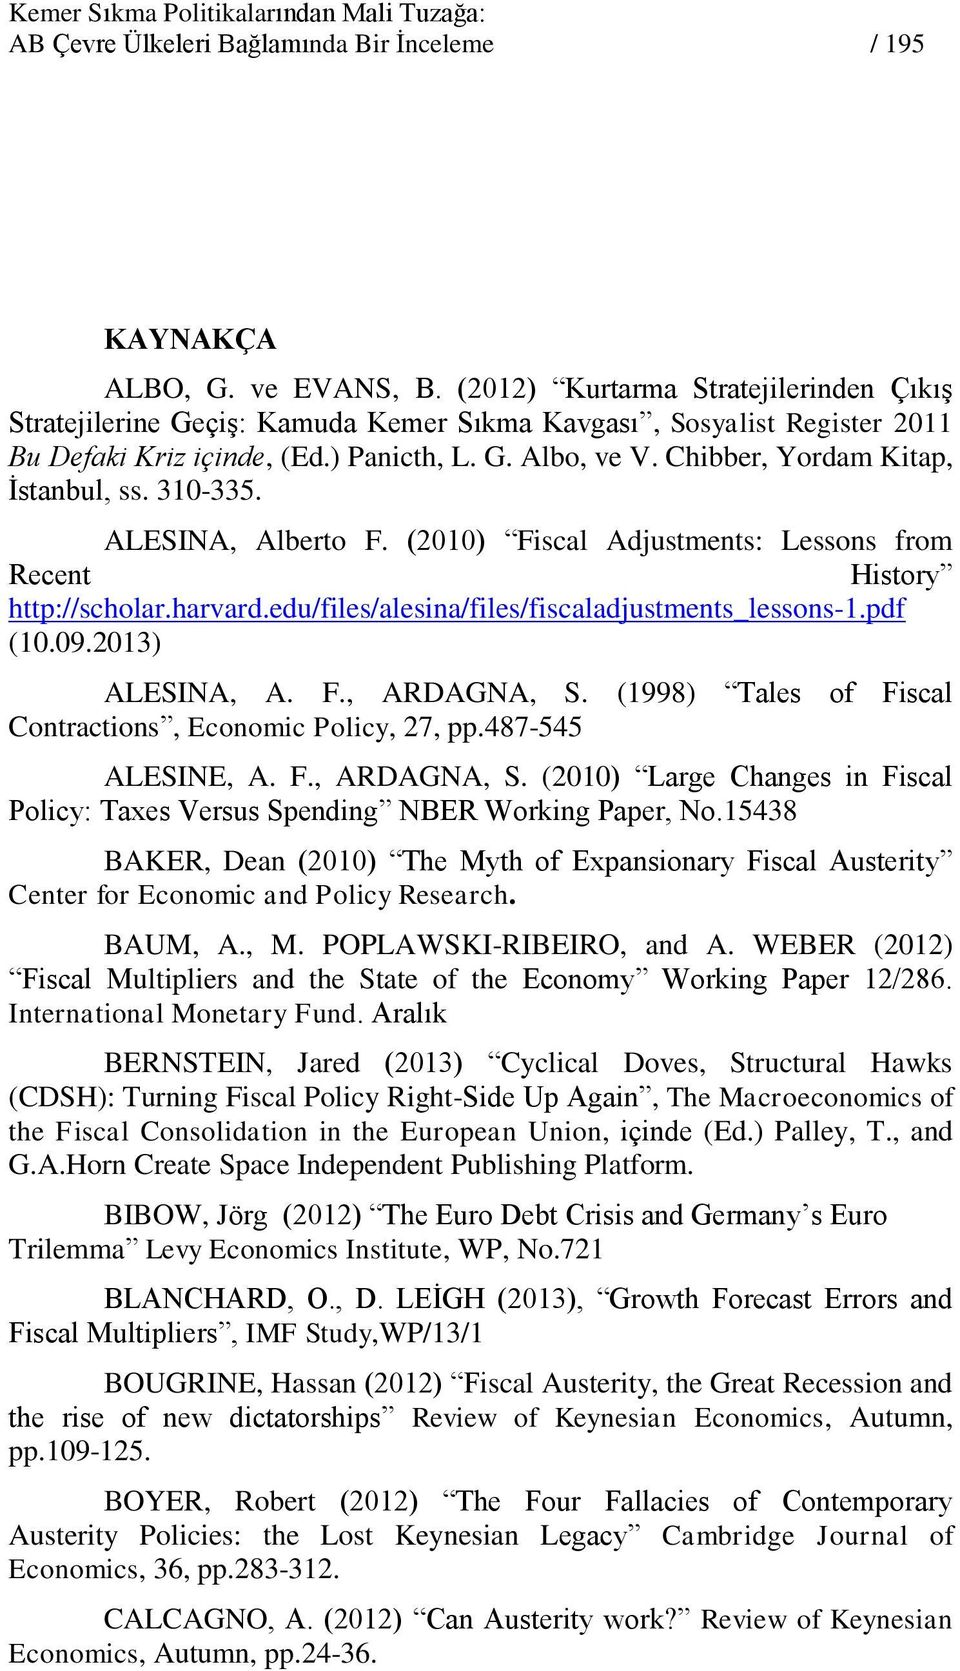 Chibber, Yordam Kitap, İstanbul, ss. 310-335. ALESINA, Alberto F. (2010) Fiscal Adjustments: Lessons from Recent History http://scholar.harvard.edu/files/alesina/files/fiscaladjustments_lessons-1.